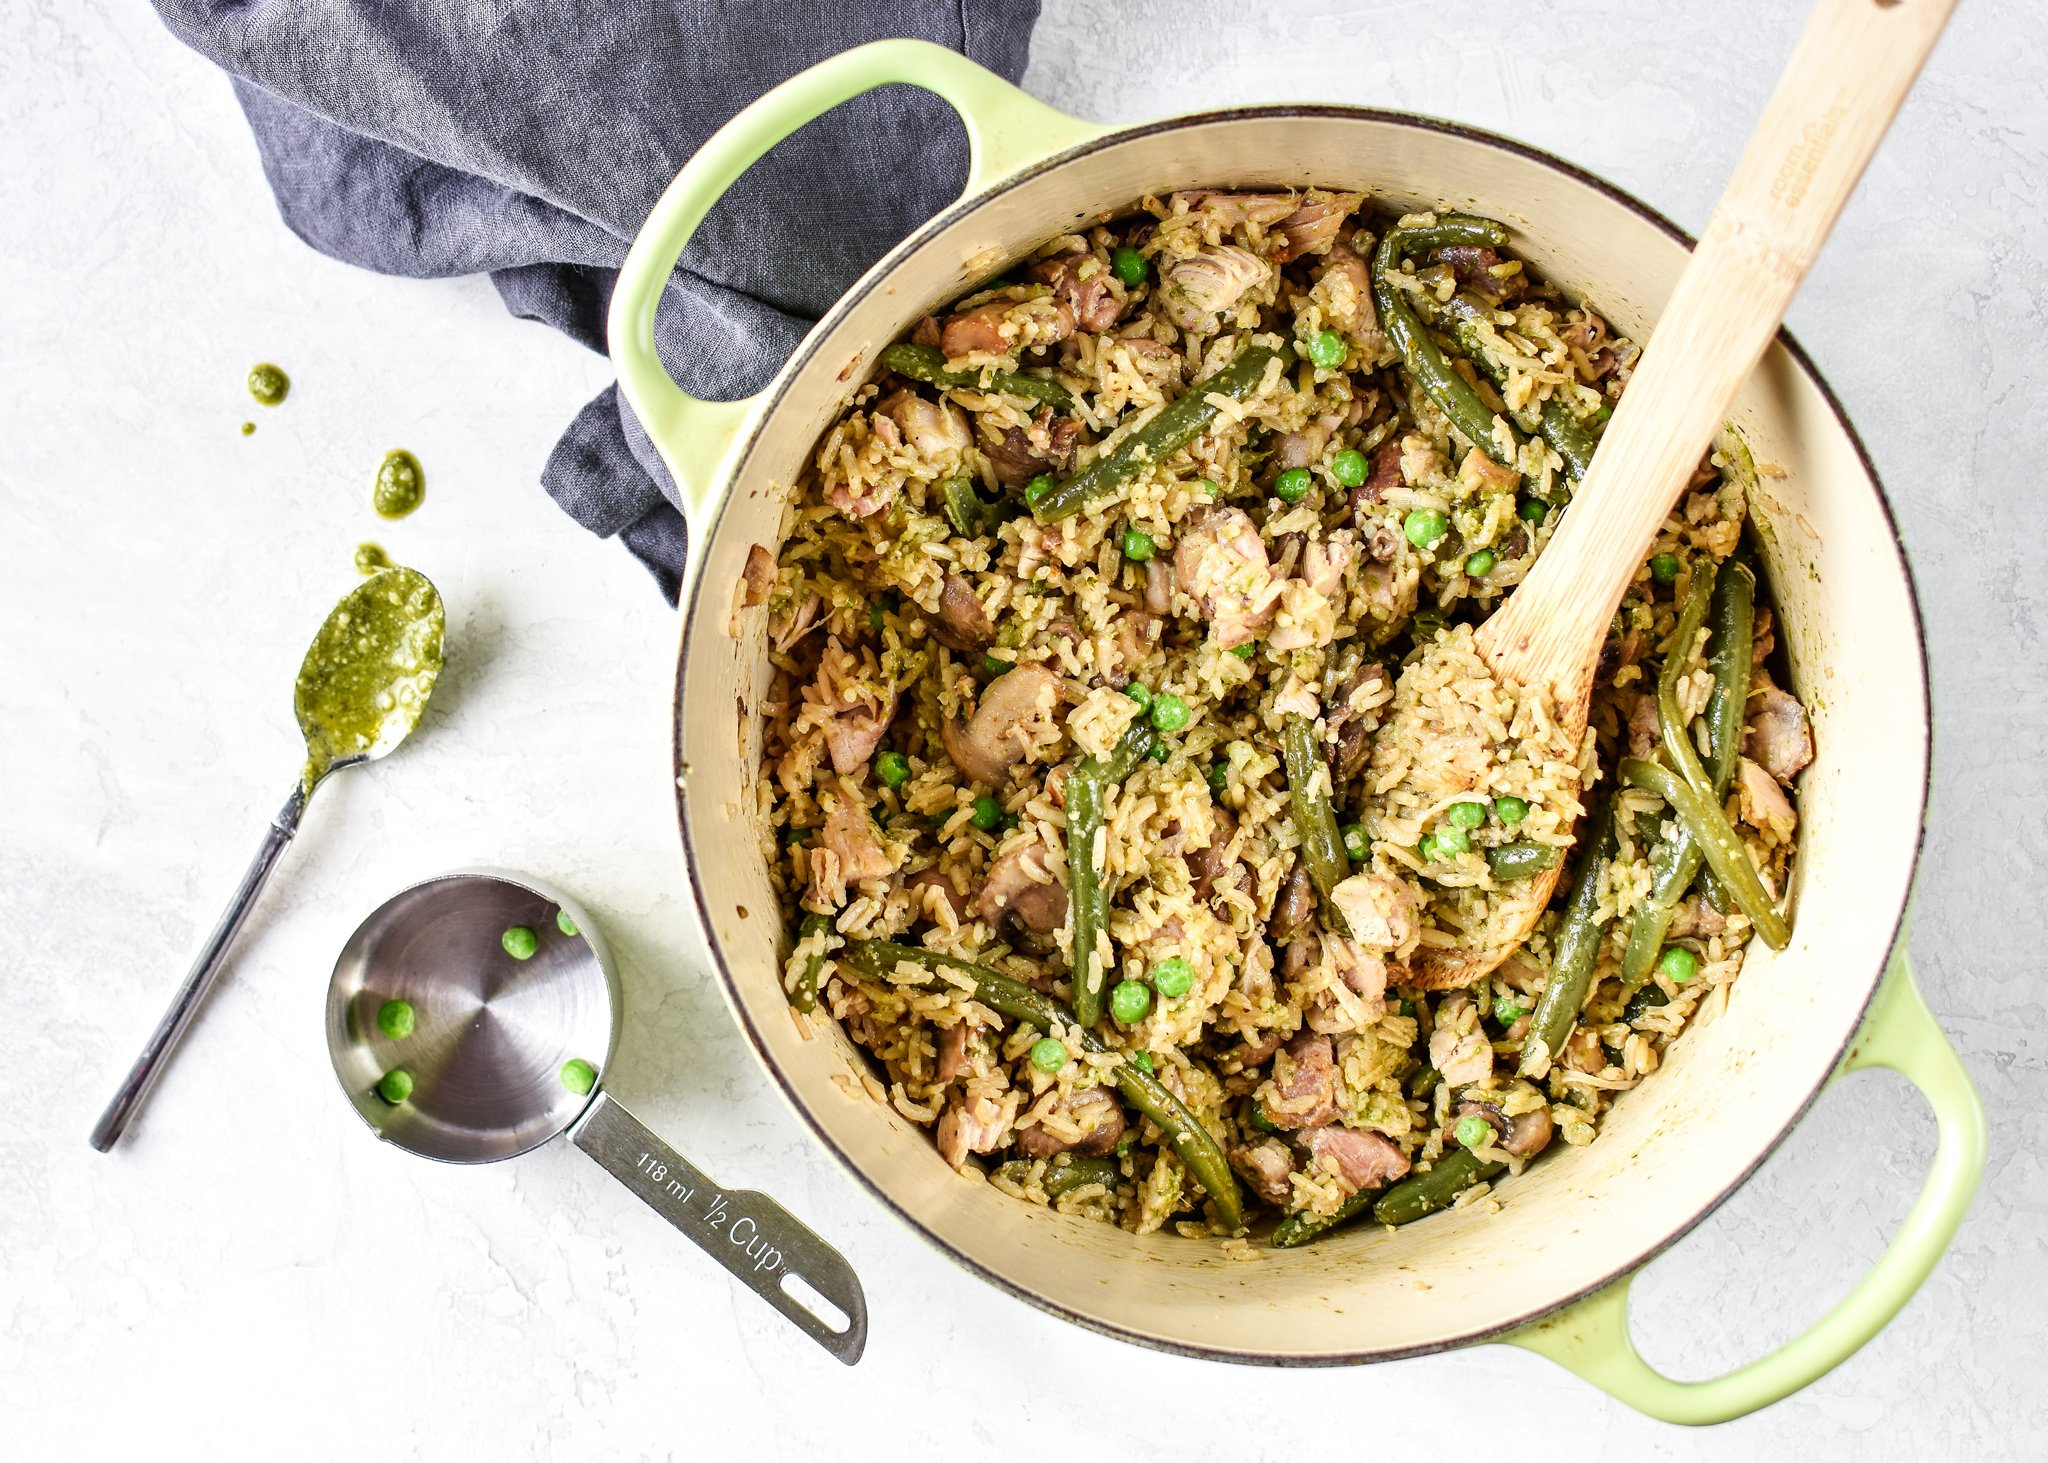 One-pot, no chopping veggies, and done in about 35 minutes. This One-Pot Pesto Chicken and Rice is the perfect idea if you're short on dinner prep time. - ProjectMealPlan.com